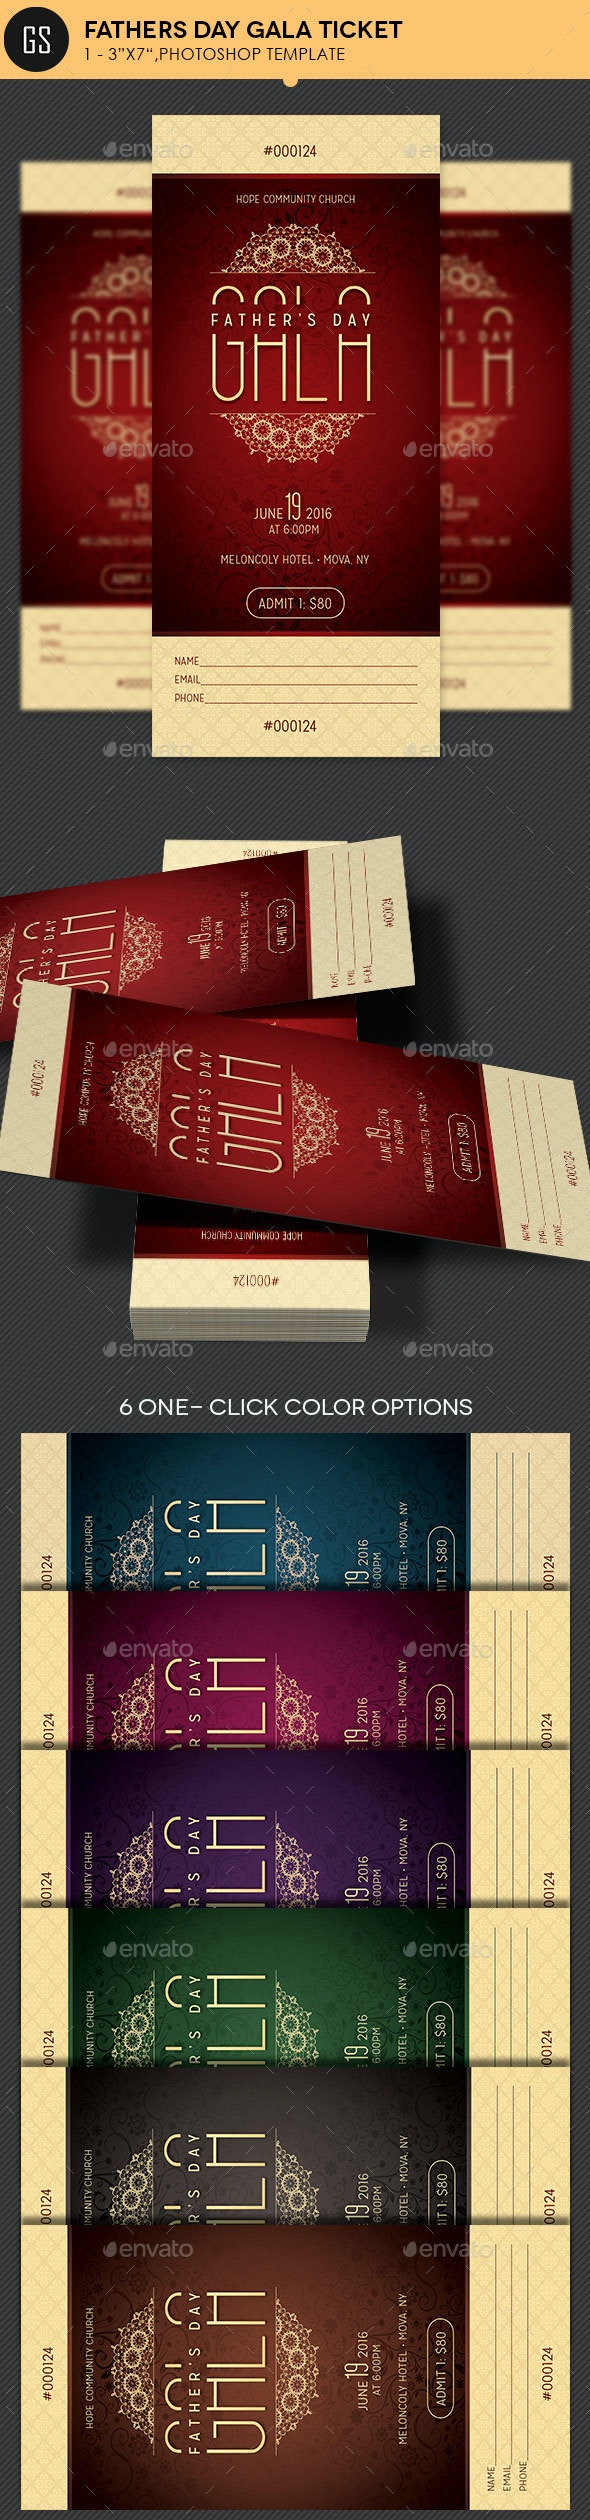 Fathers Day Gala Ticket Template - Miscellaneous Print Templates